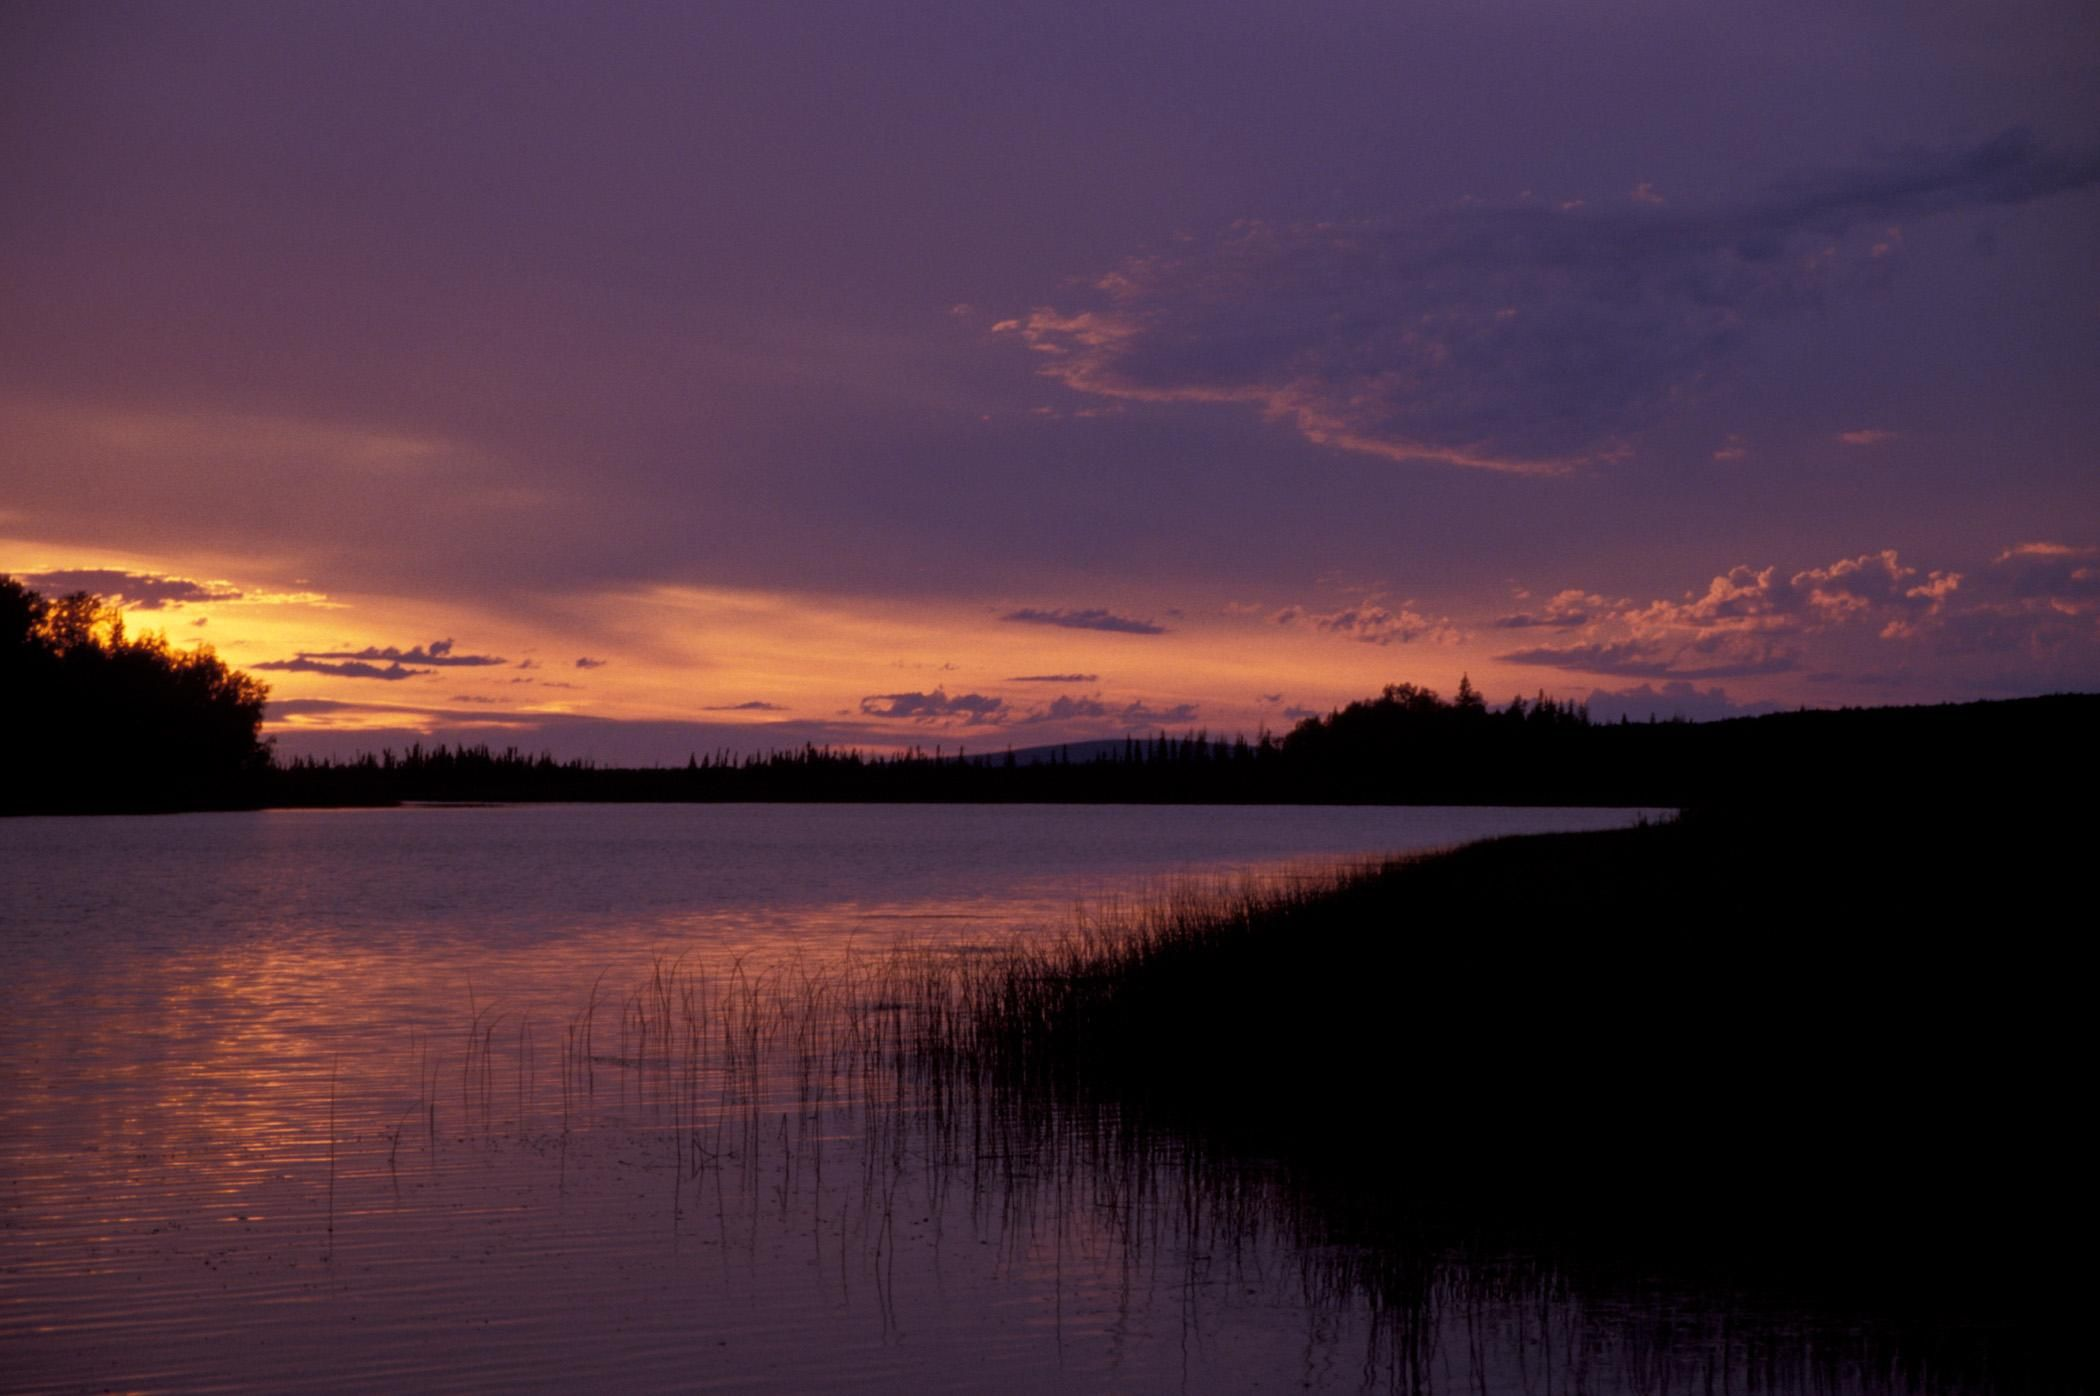 Sunset on the innoko national wildlife refuge